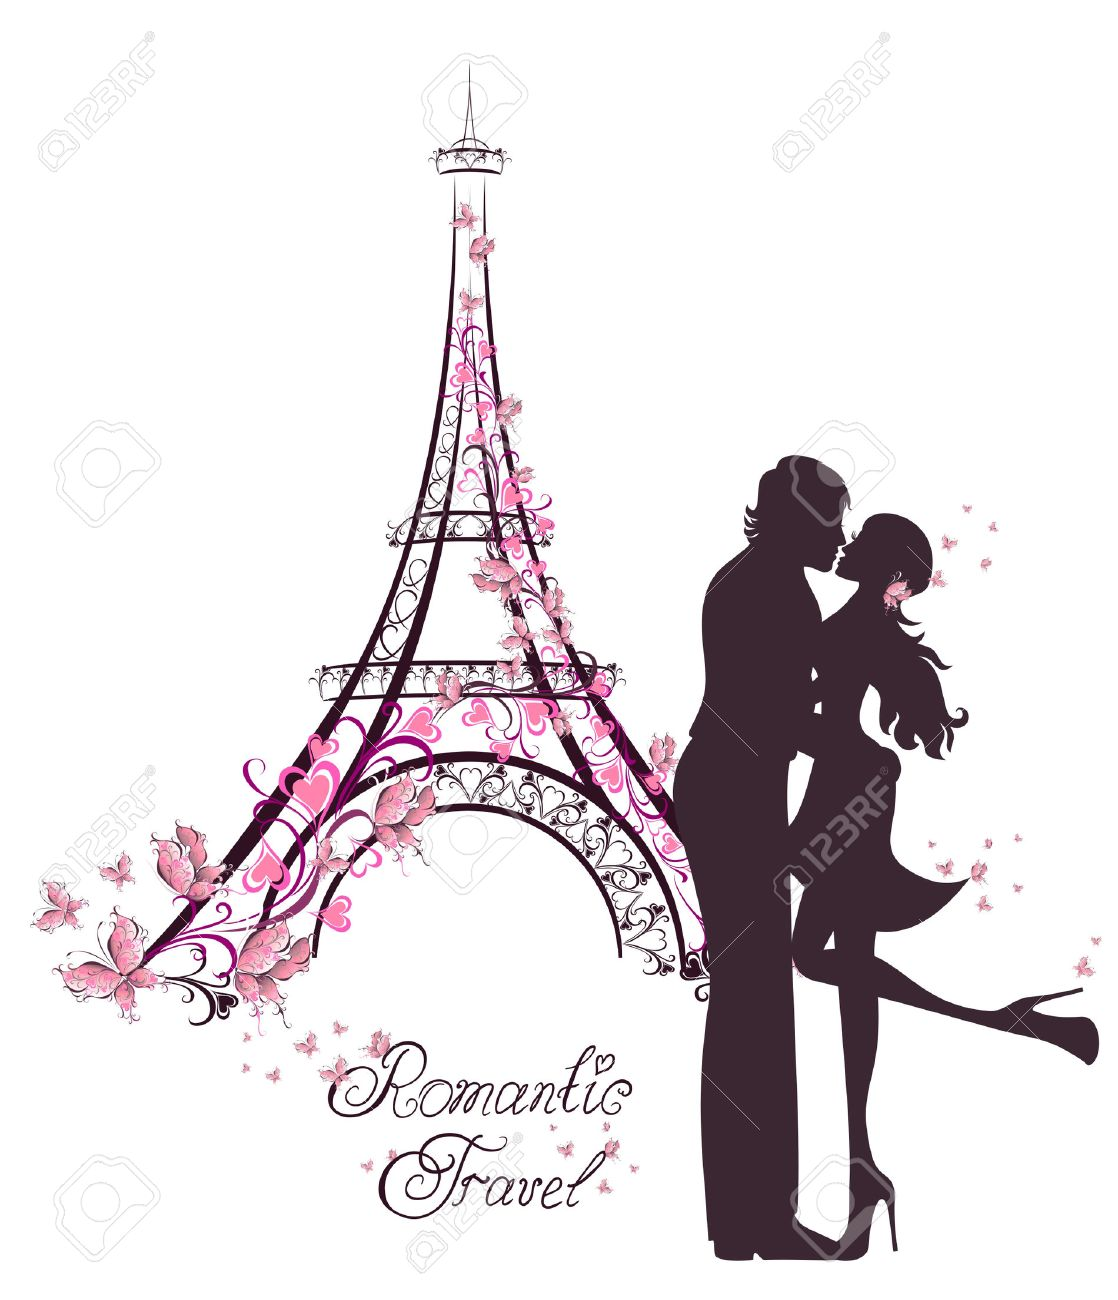 2665 Honeymoon Travel Stock Vector Illustration And Royalty Free